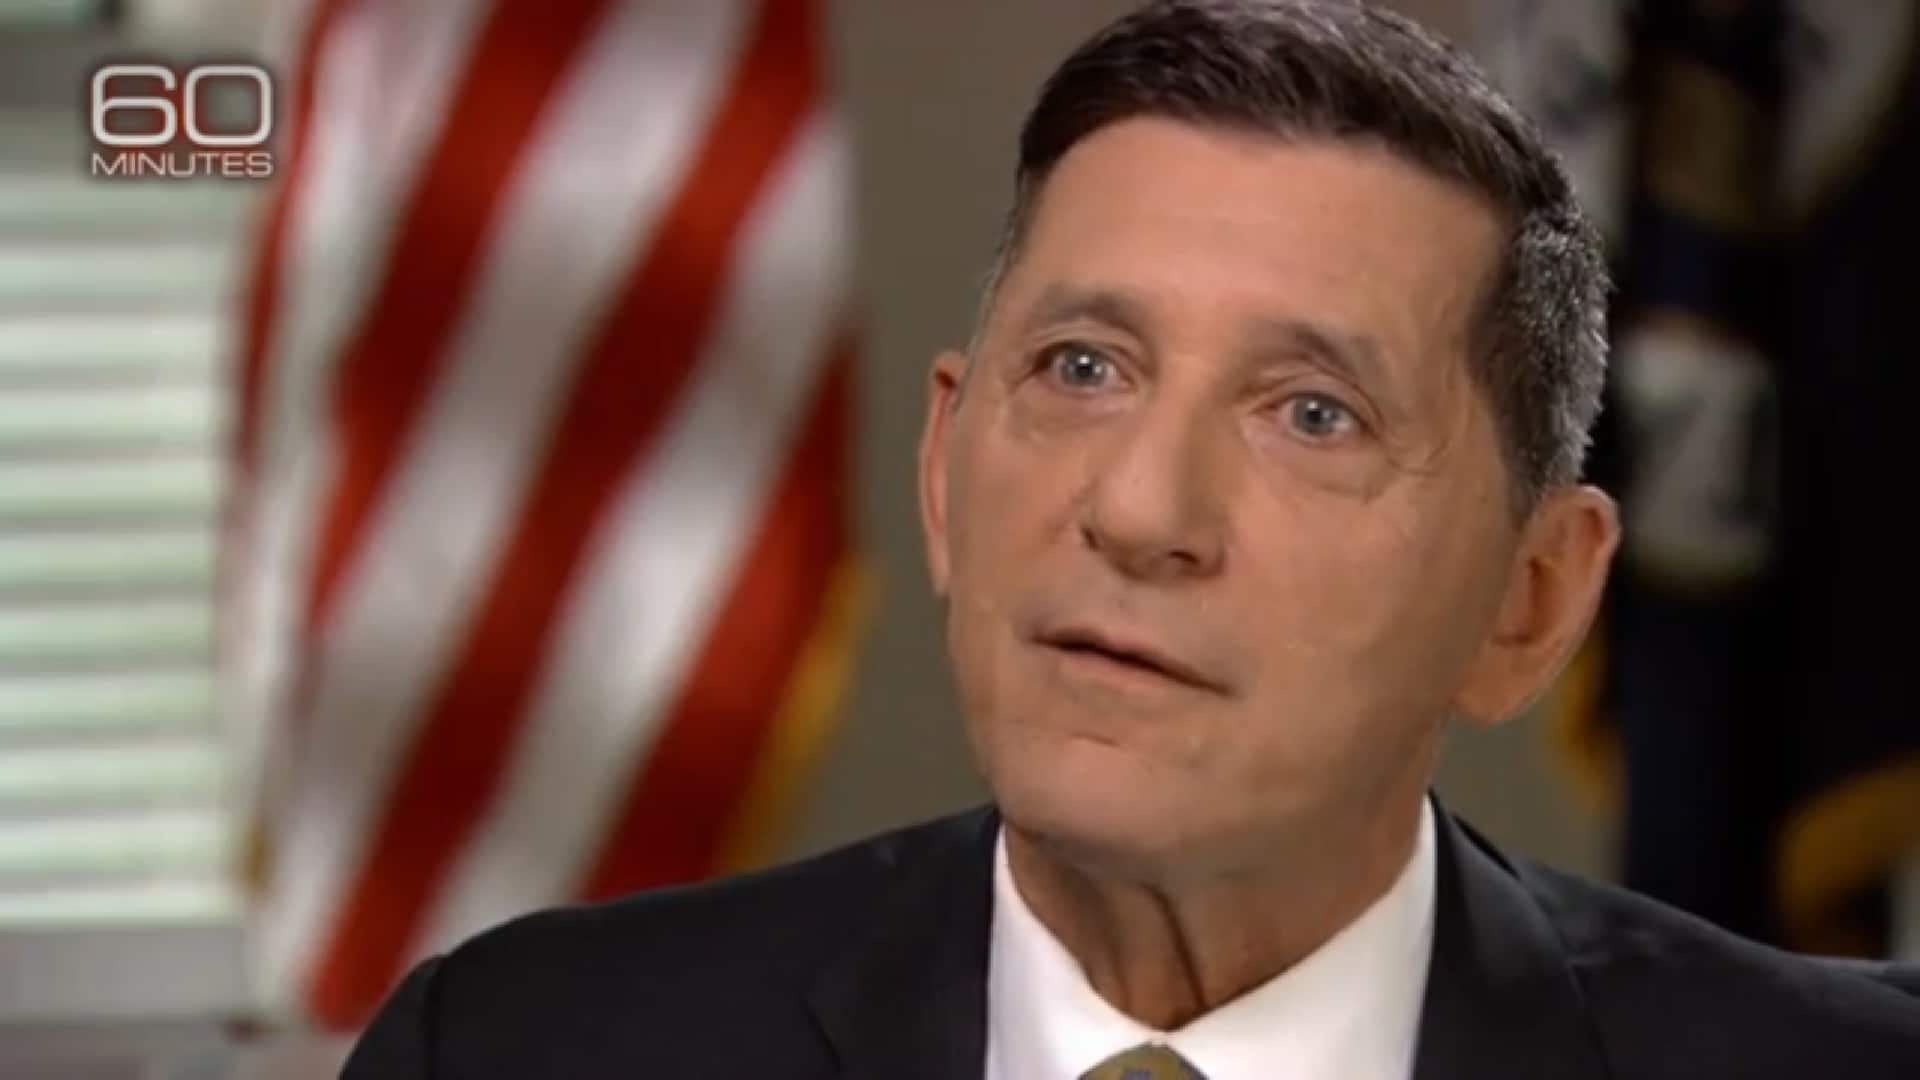 New Drug Czar Michael Botticelli Calls War on Drugs a Failure in 60 Minutes Interview